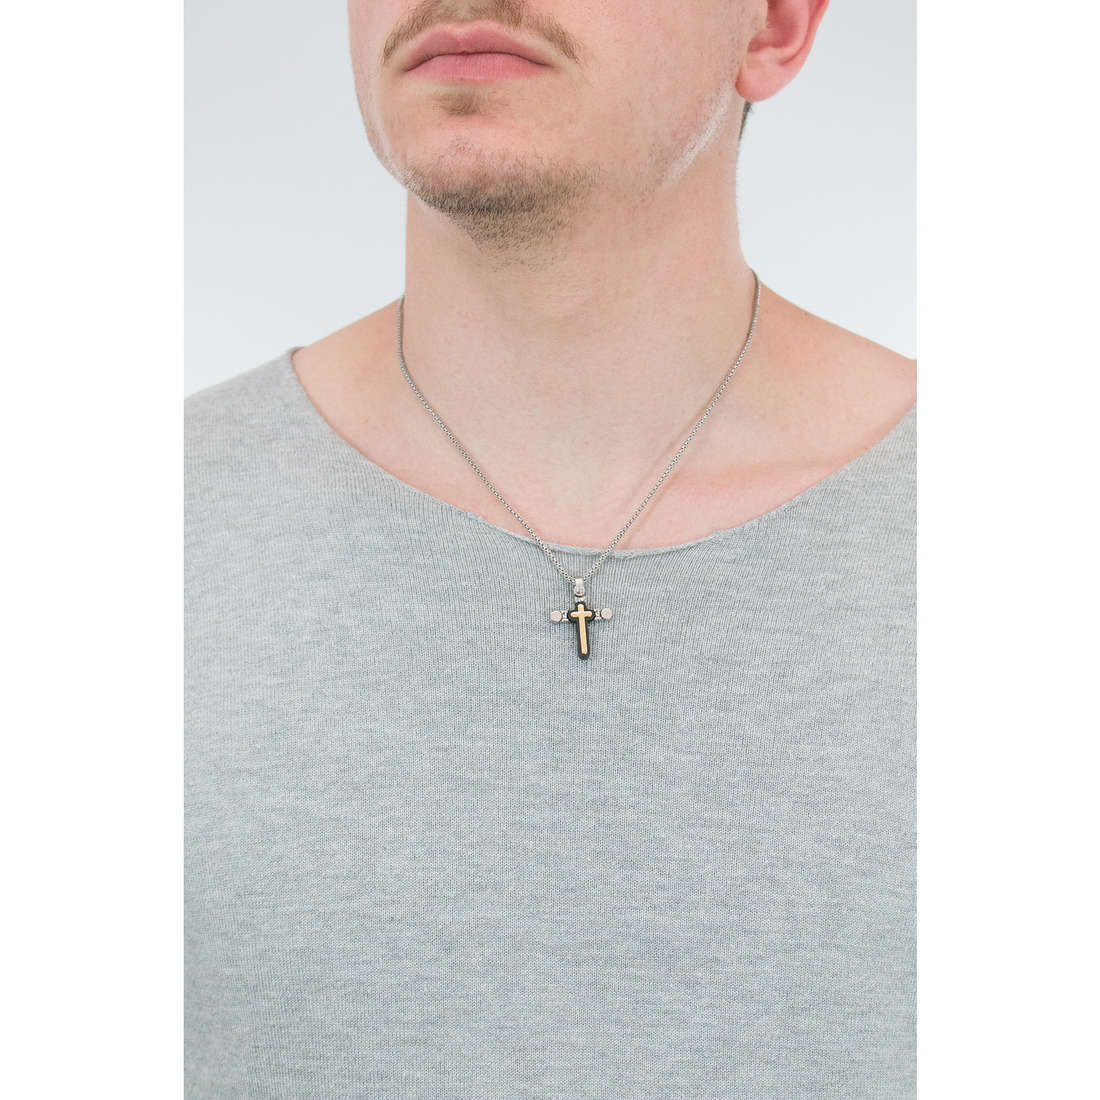 Comete necklaces Cronos man UGL 527 photo wearing